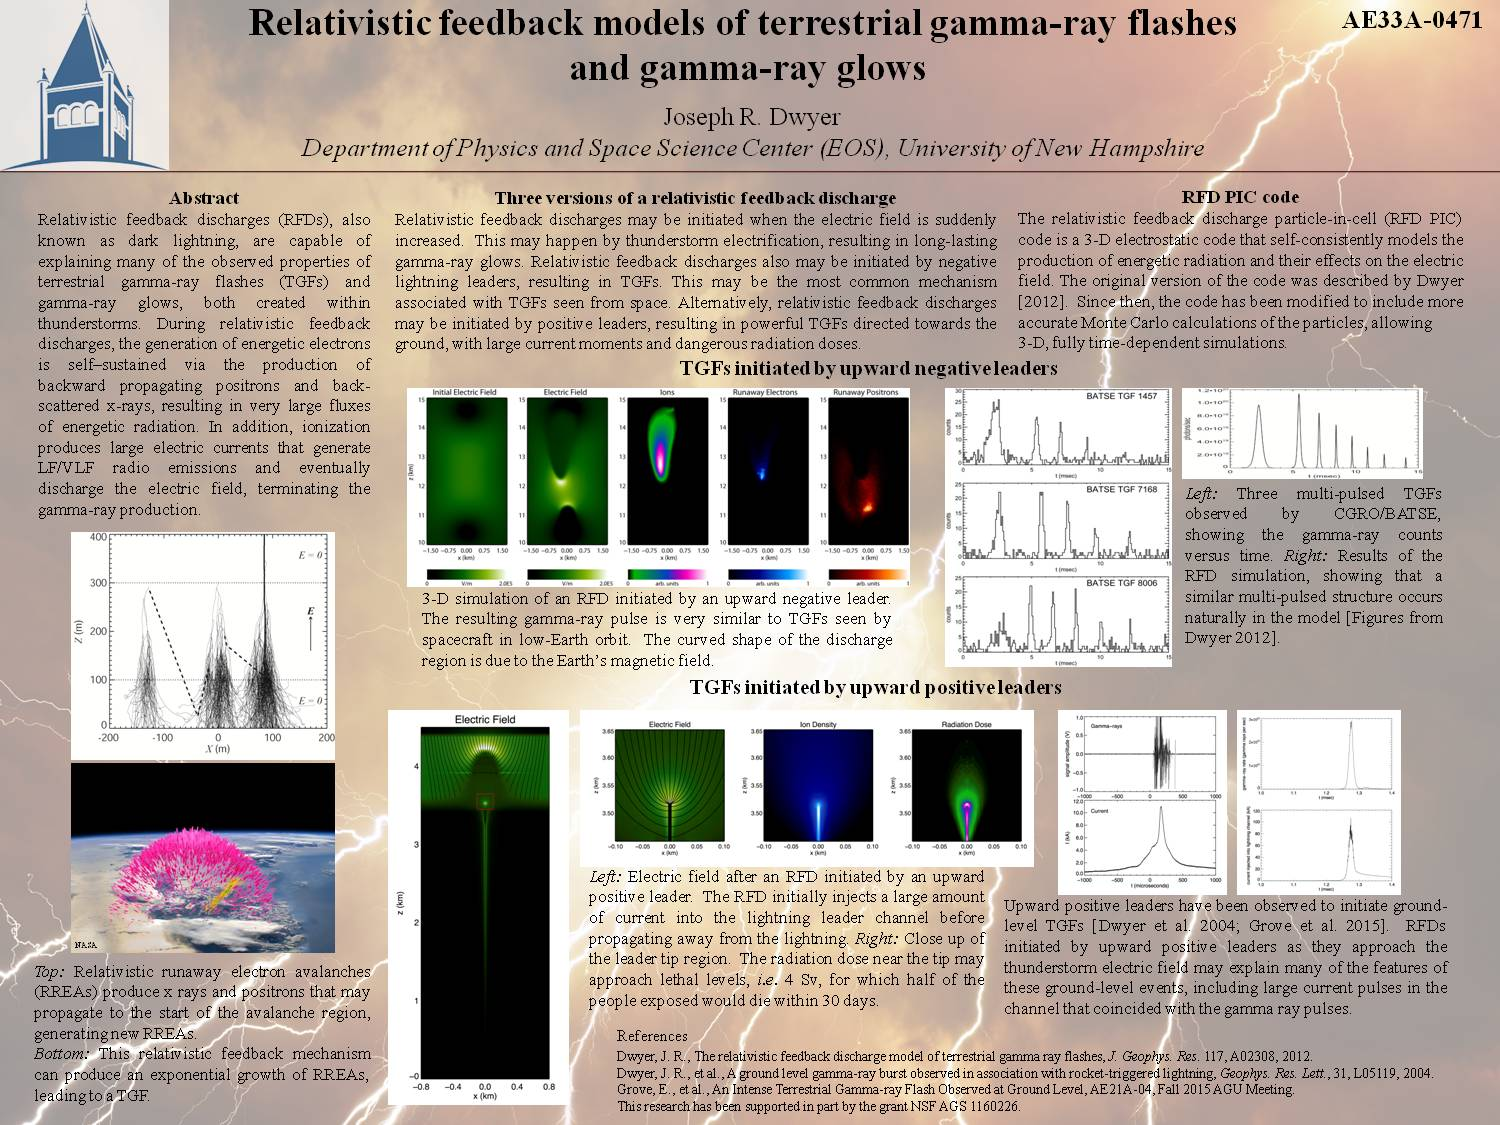 Relativistic Feedback Models Of Terrestrial Gamma-Ray Flashes And Gamma-Ray Glows by jrd1002